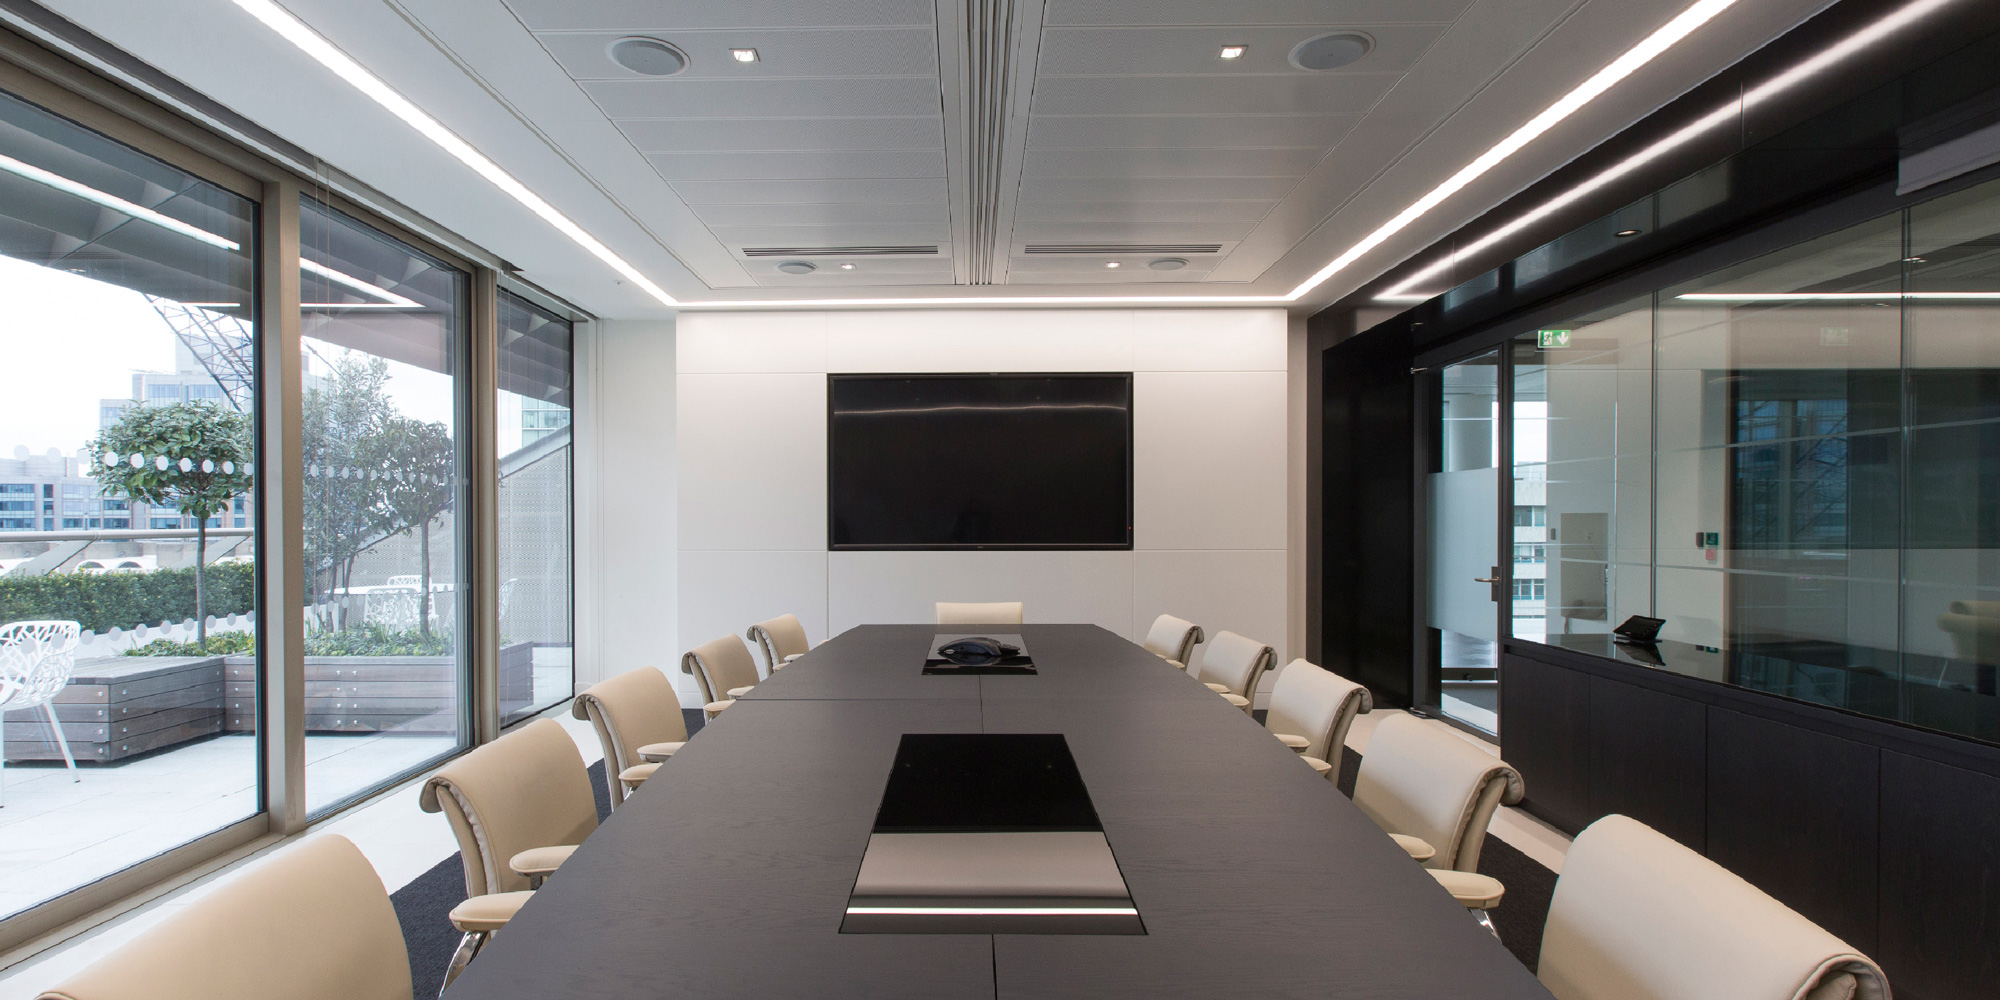 Showing an office fit-out at one of the Caixa Geral De Depósitos premises located in Fore Street, London